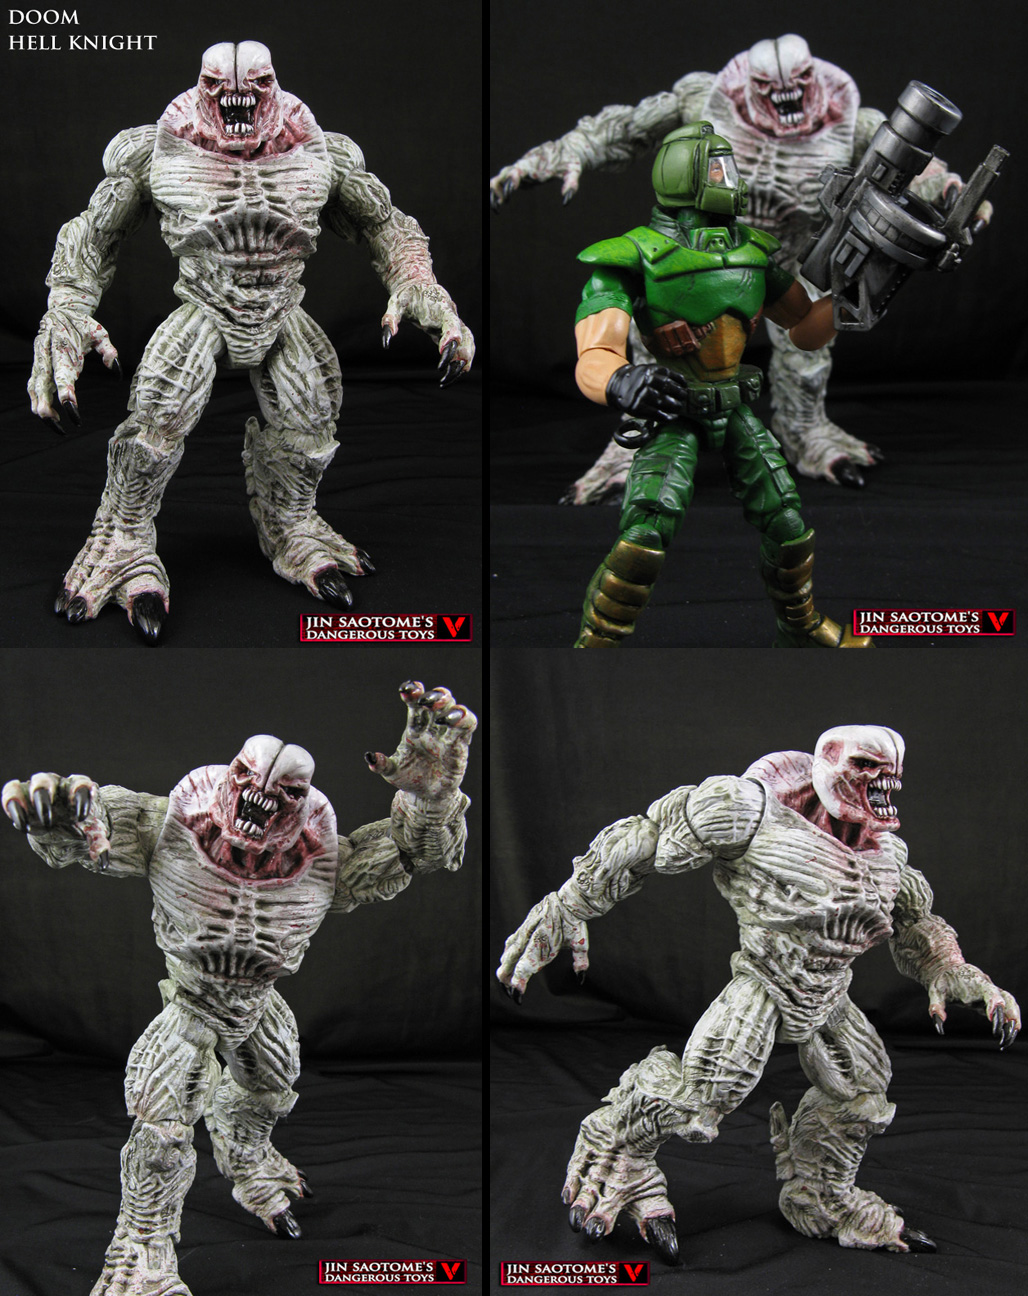 custom doom hell knight action figure by jinsaotome on